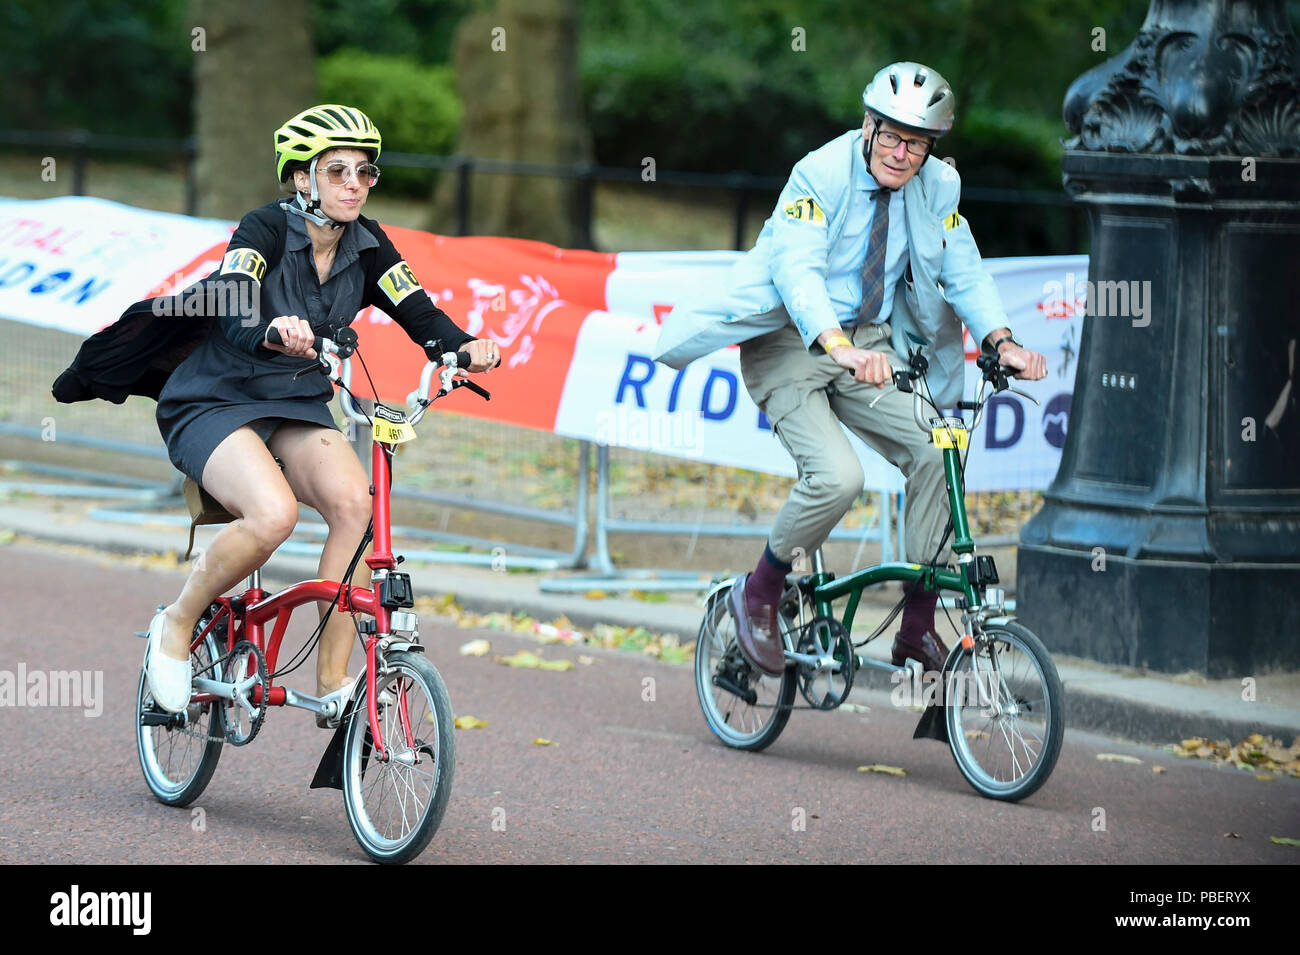 London, UK.  28 July 2018.  People take part in the 13th Brompton World Championship Final, part of Prudential RideLondon, riding a 1.3km circuit around St James's Park. (Editorial use only) Credit: Stephen Chung / Alamy Live News Stock Photo